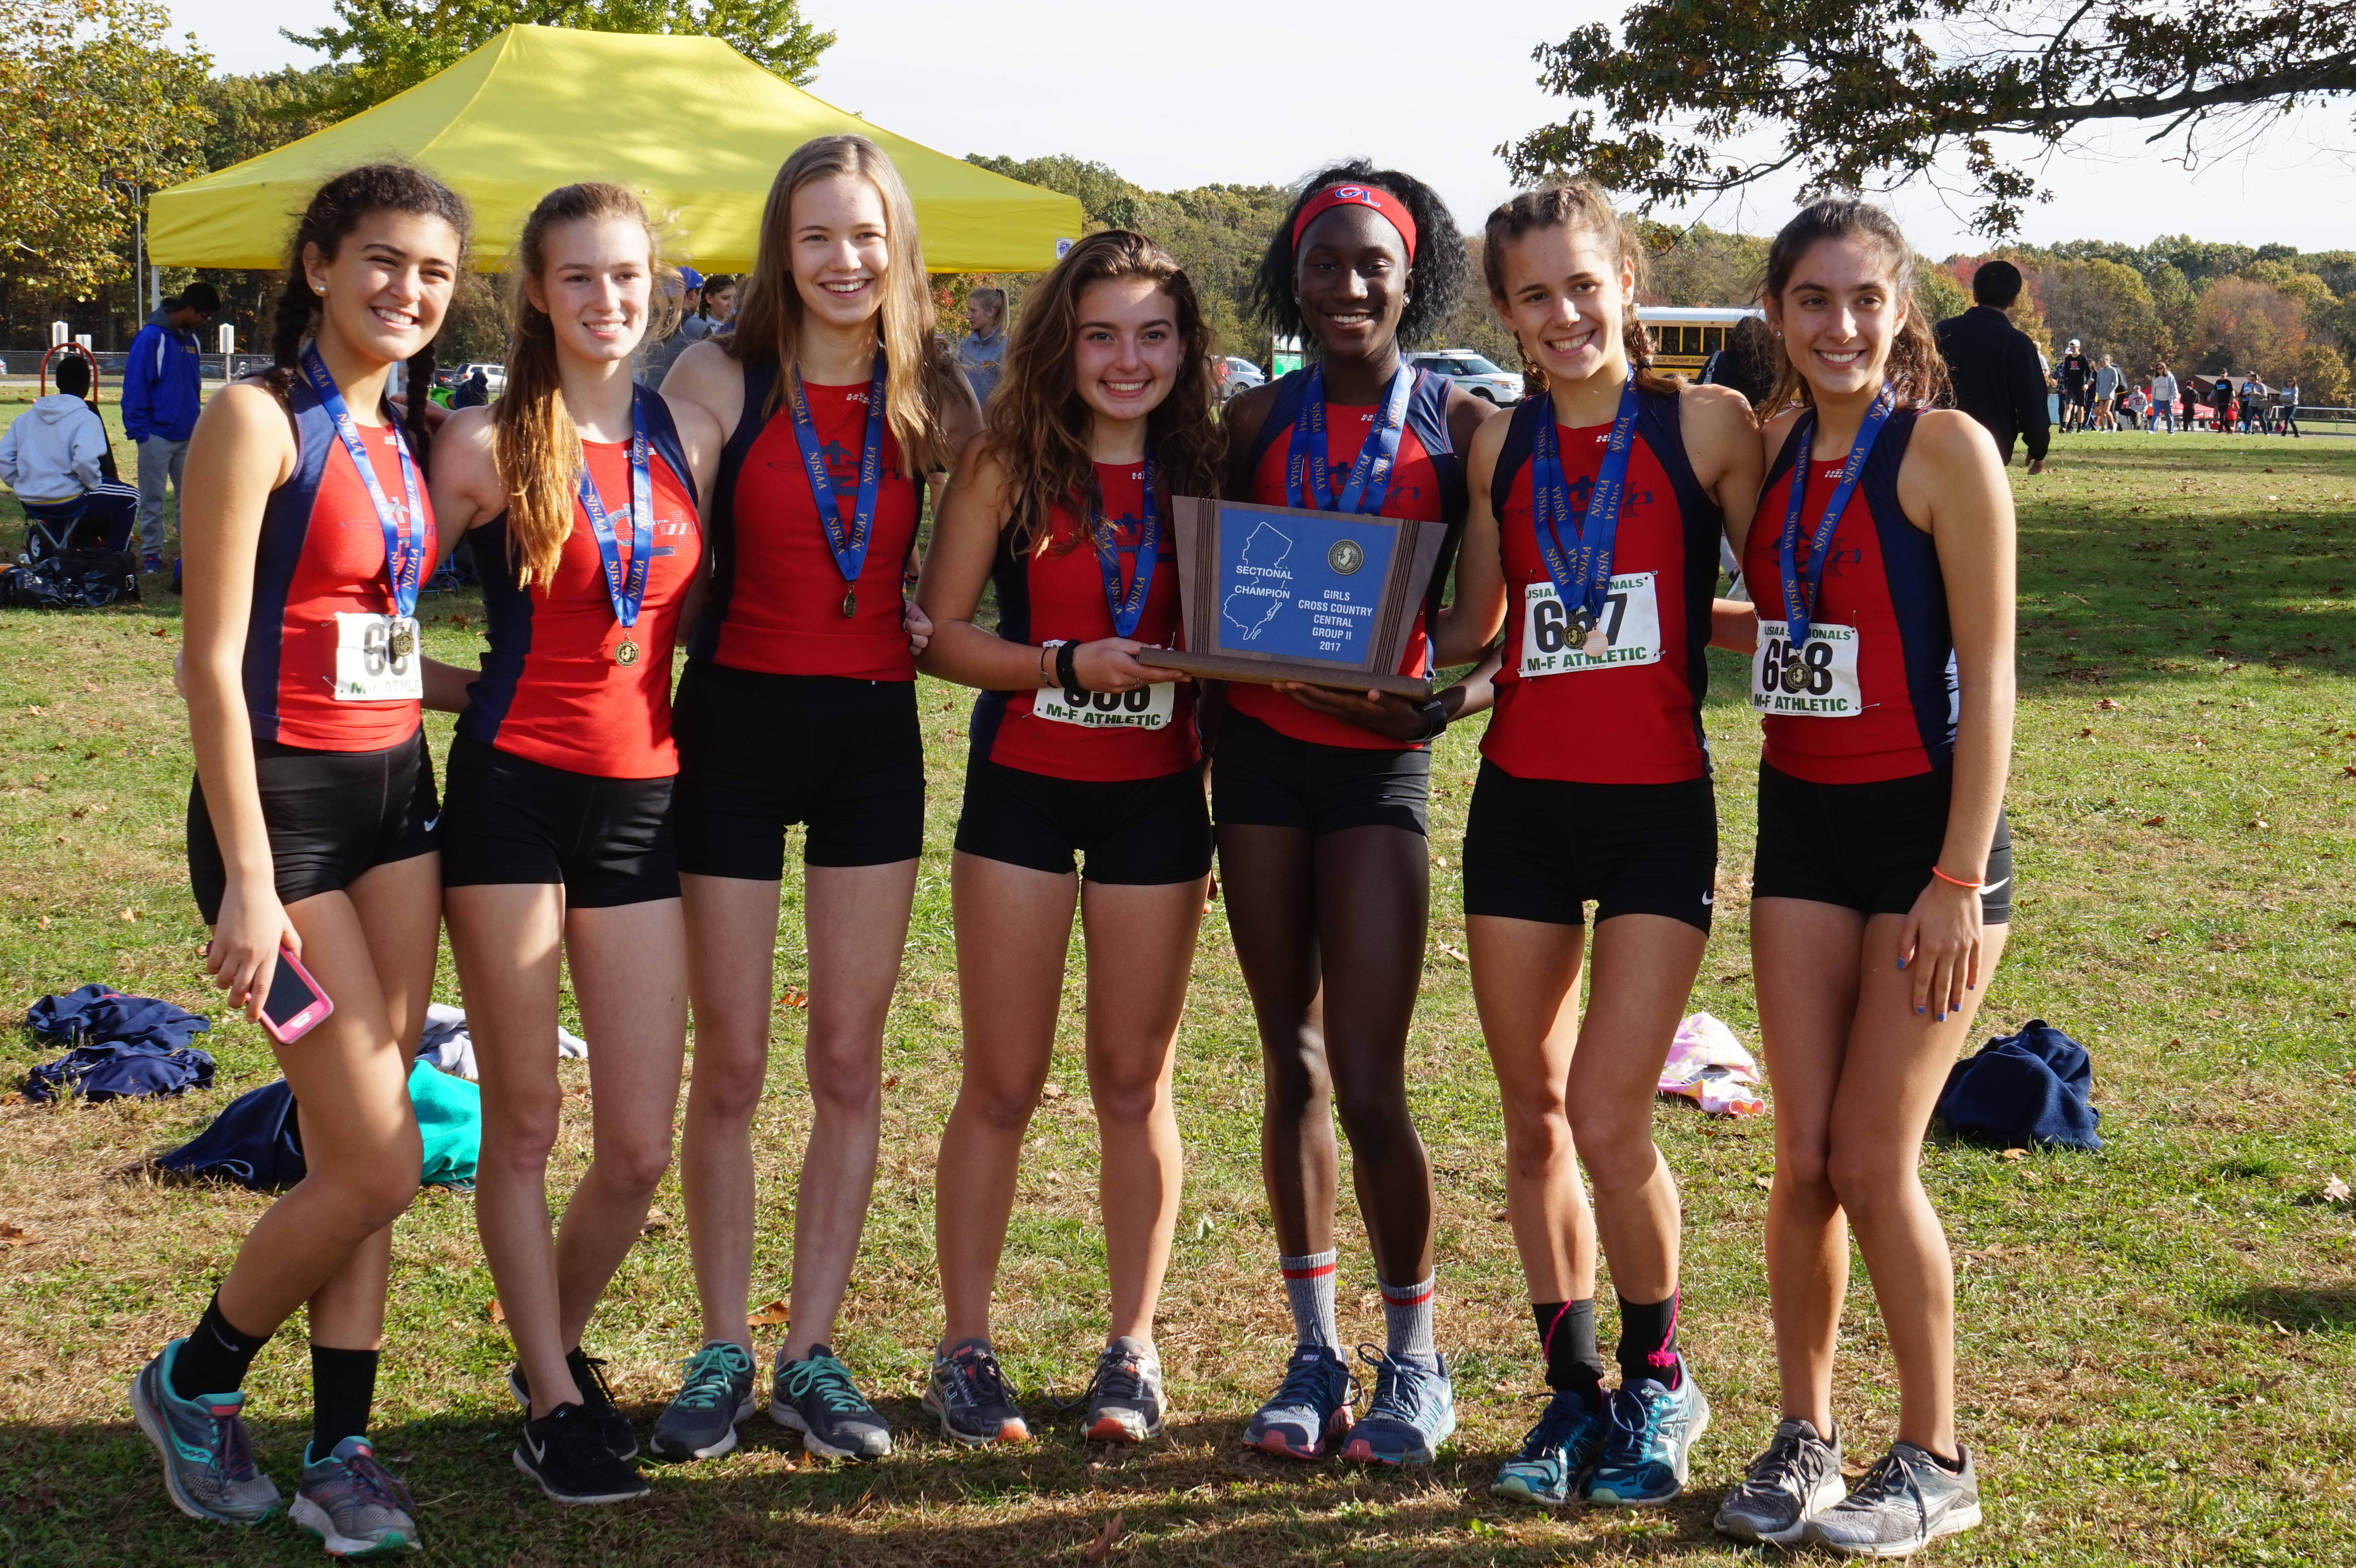 2b68be4d6d6f635582fb_Cross_Country_-_Sectionals_-_Nov_4_2017_-_Girls_Championship_Team_-_DSC01216.jpg